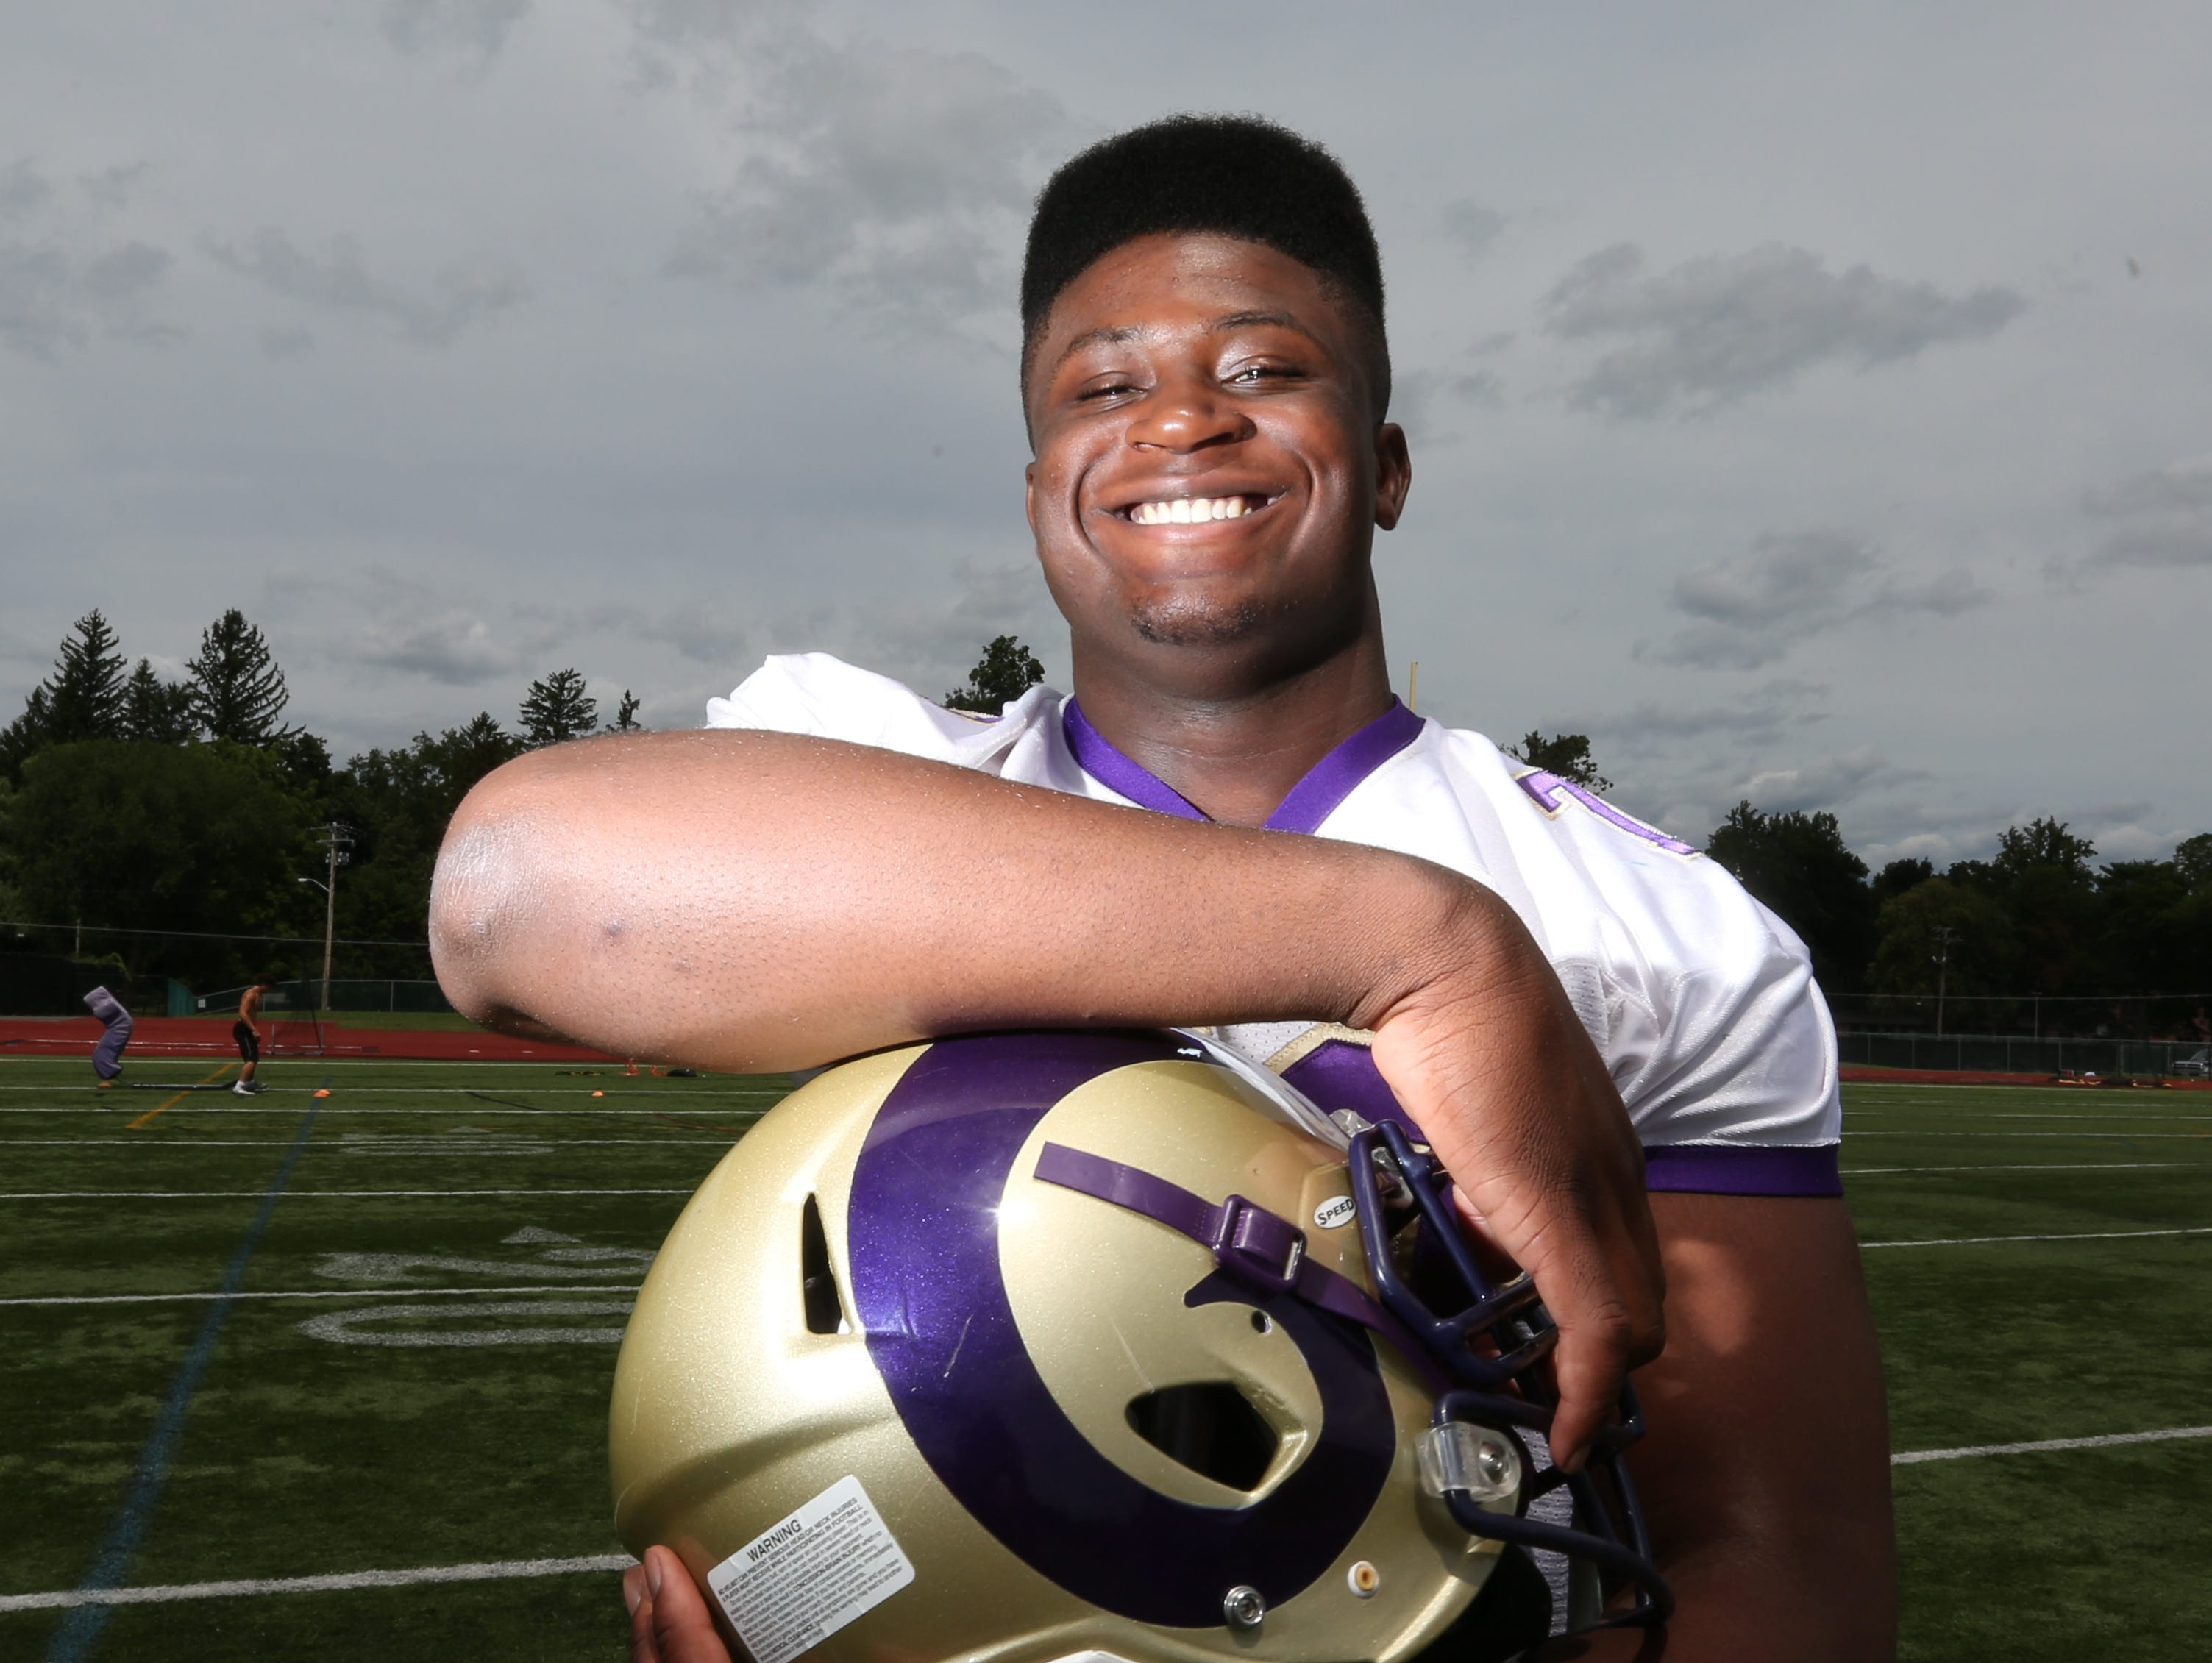 Clarkstown North senior Prince Emili, The Journal News' Rockland football player of the year.